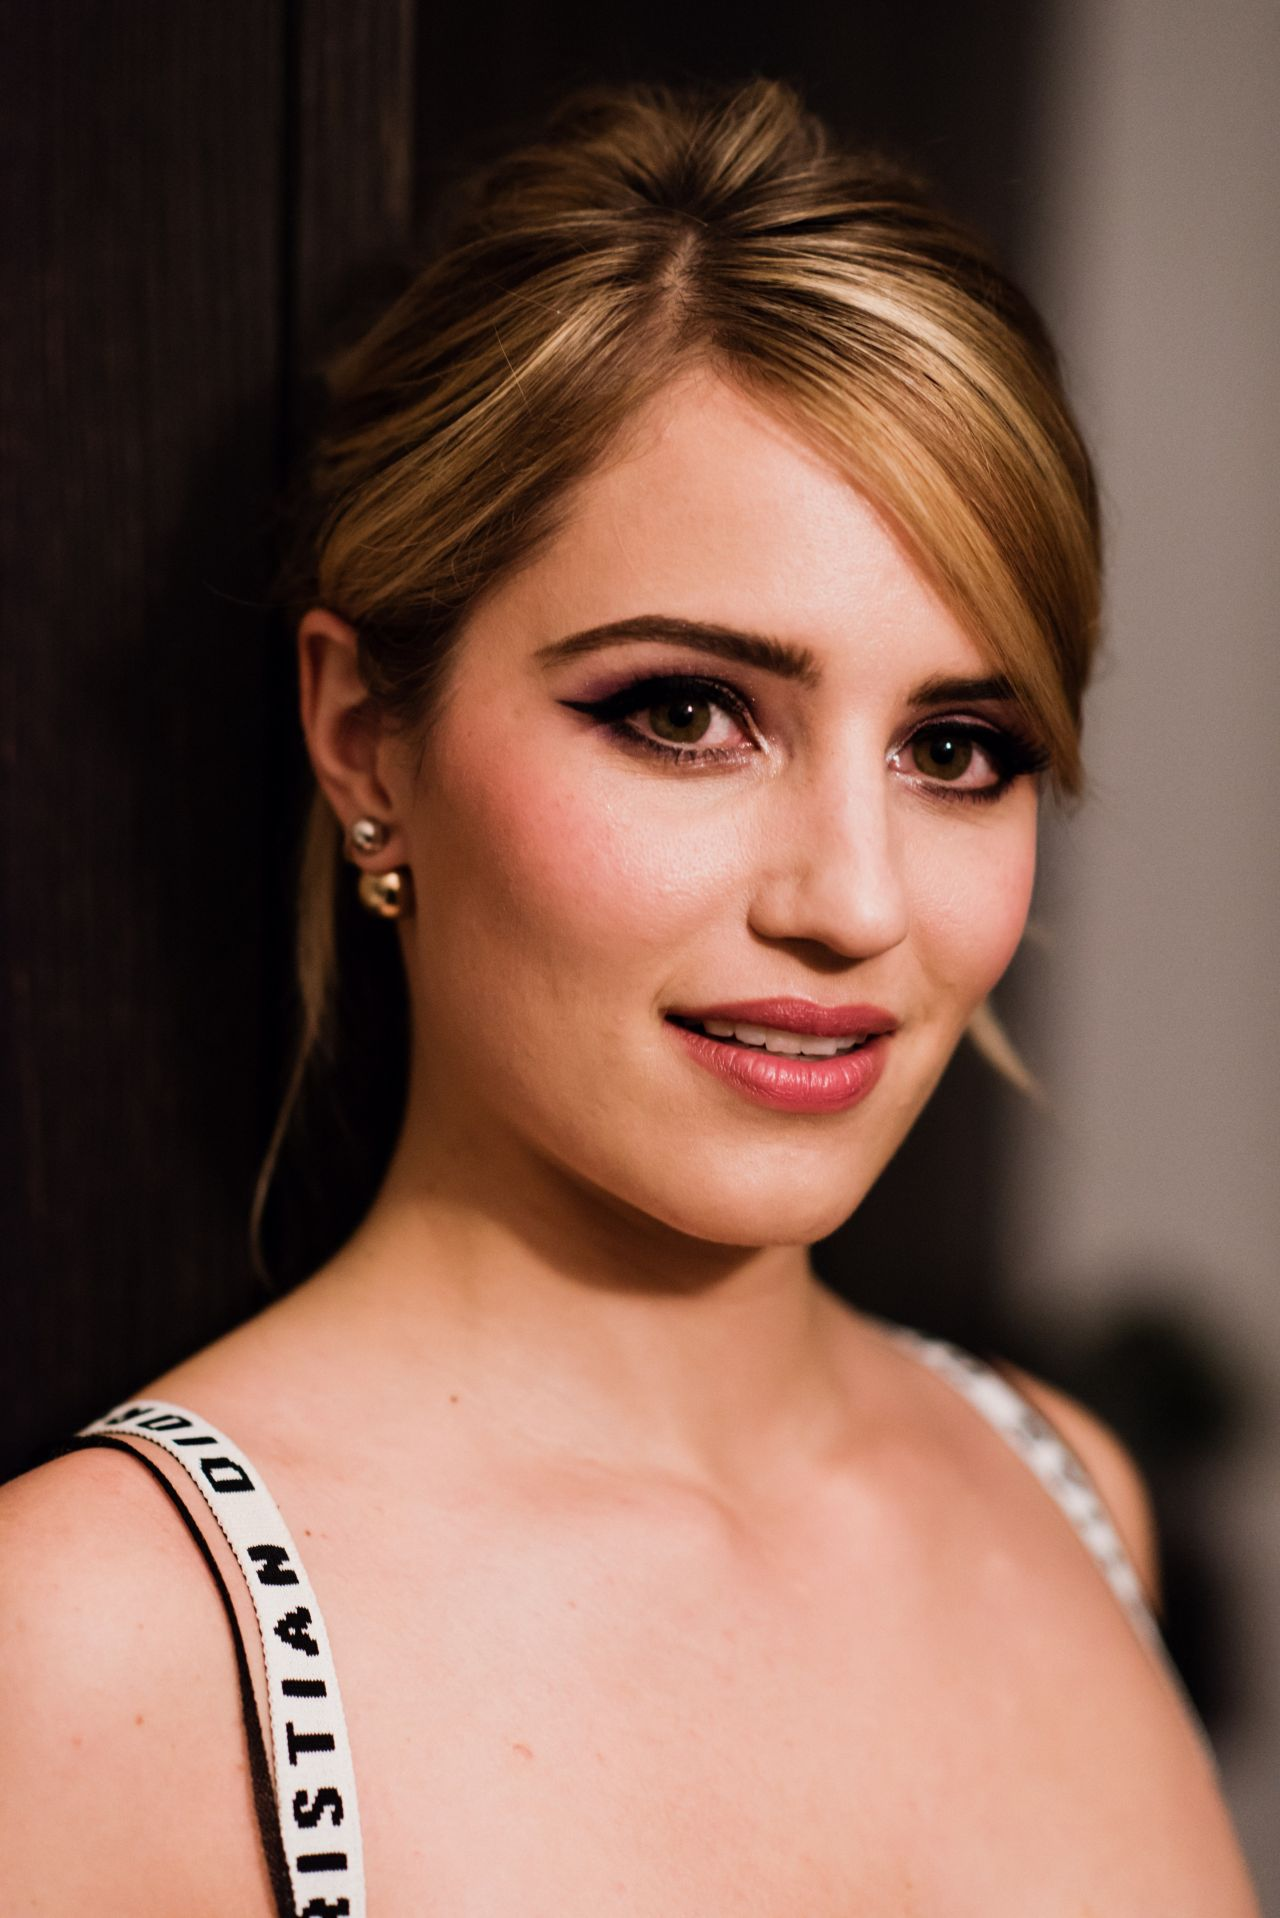 dianna agron 2017 - photo #10